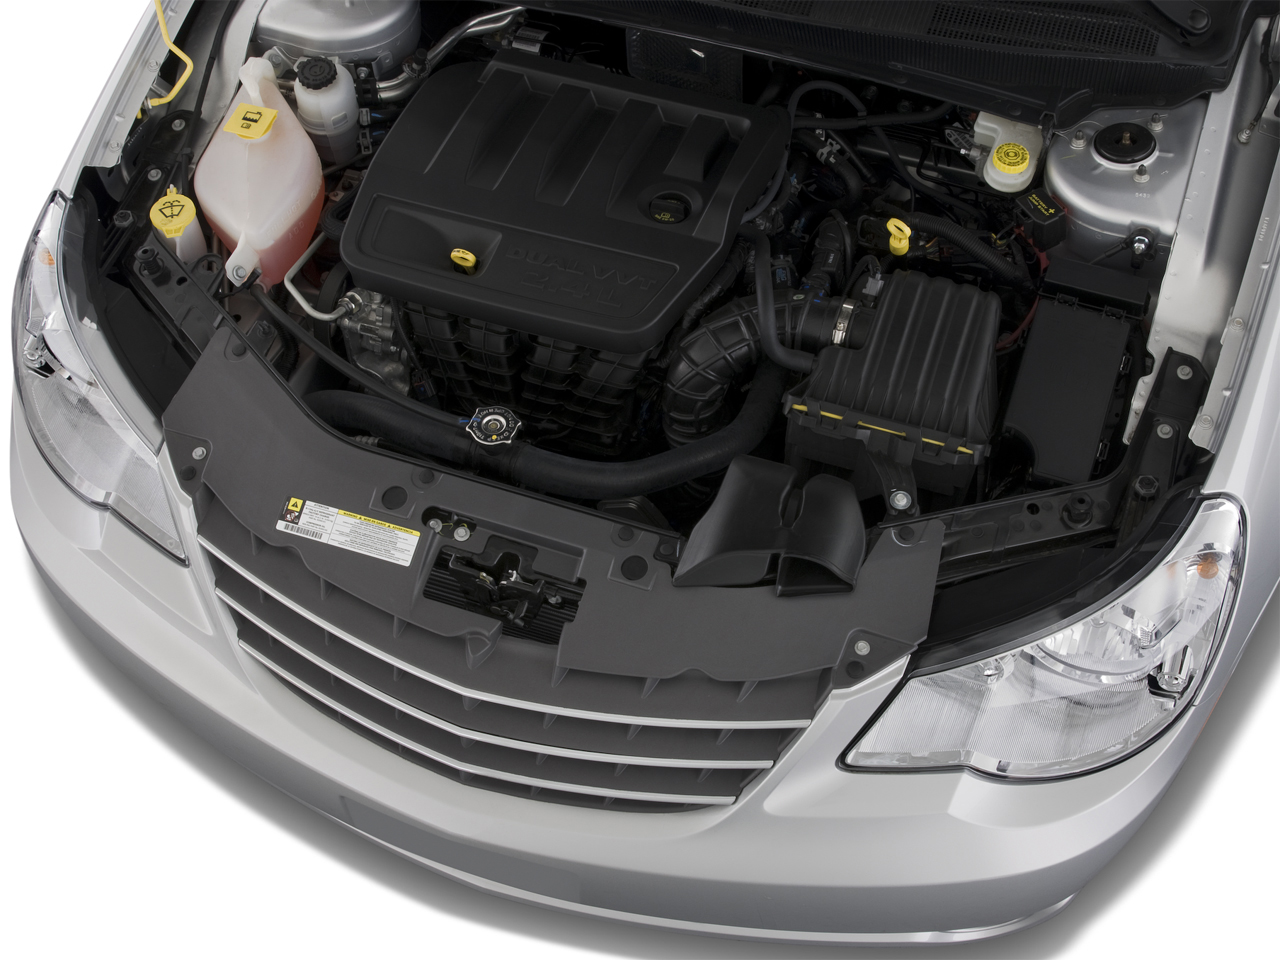 Chrysler Sebring Lx Sedan Engine on Chrysler Sebring Battery Location